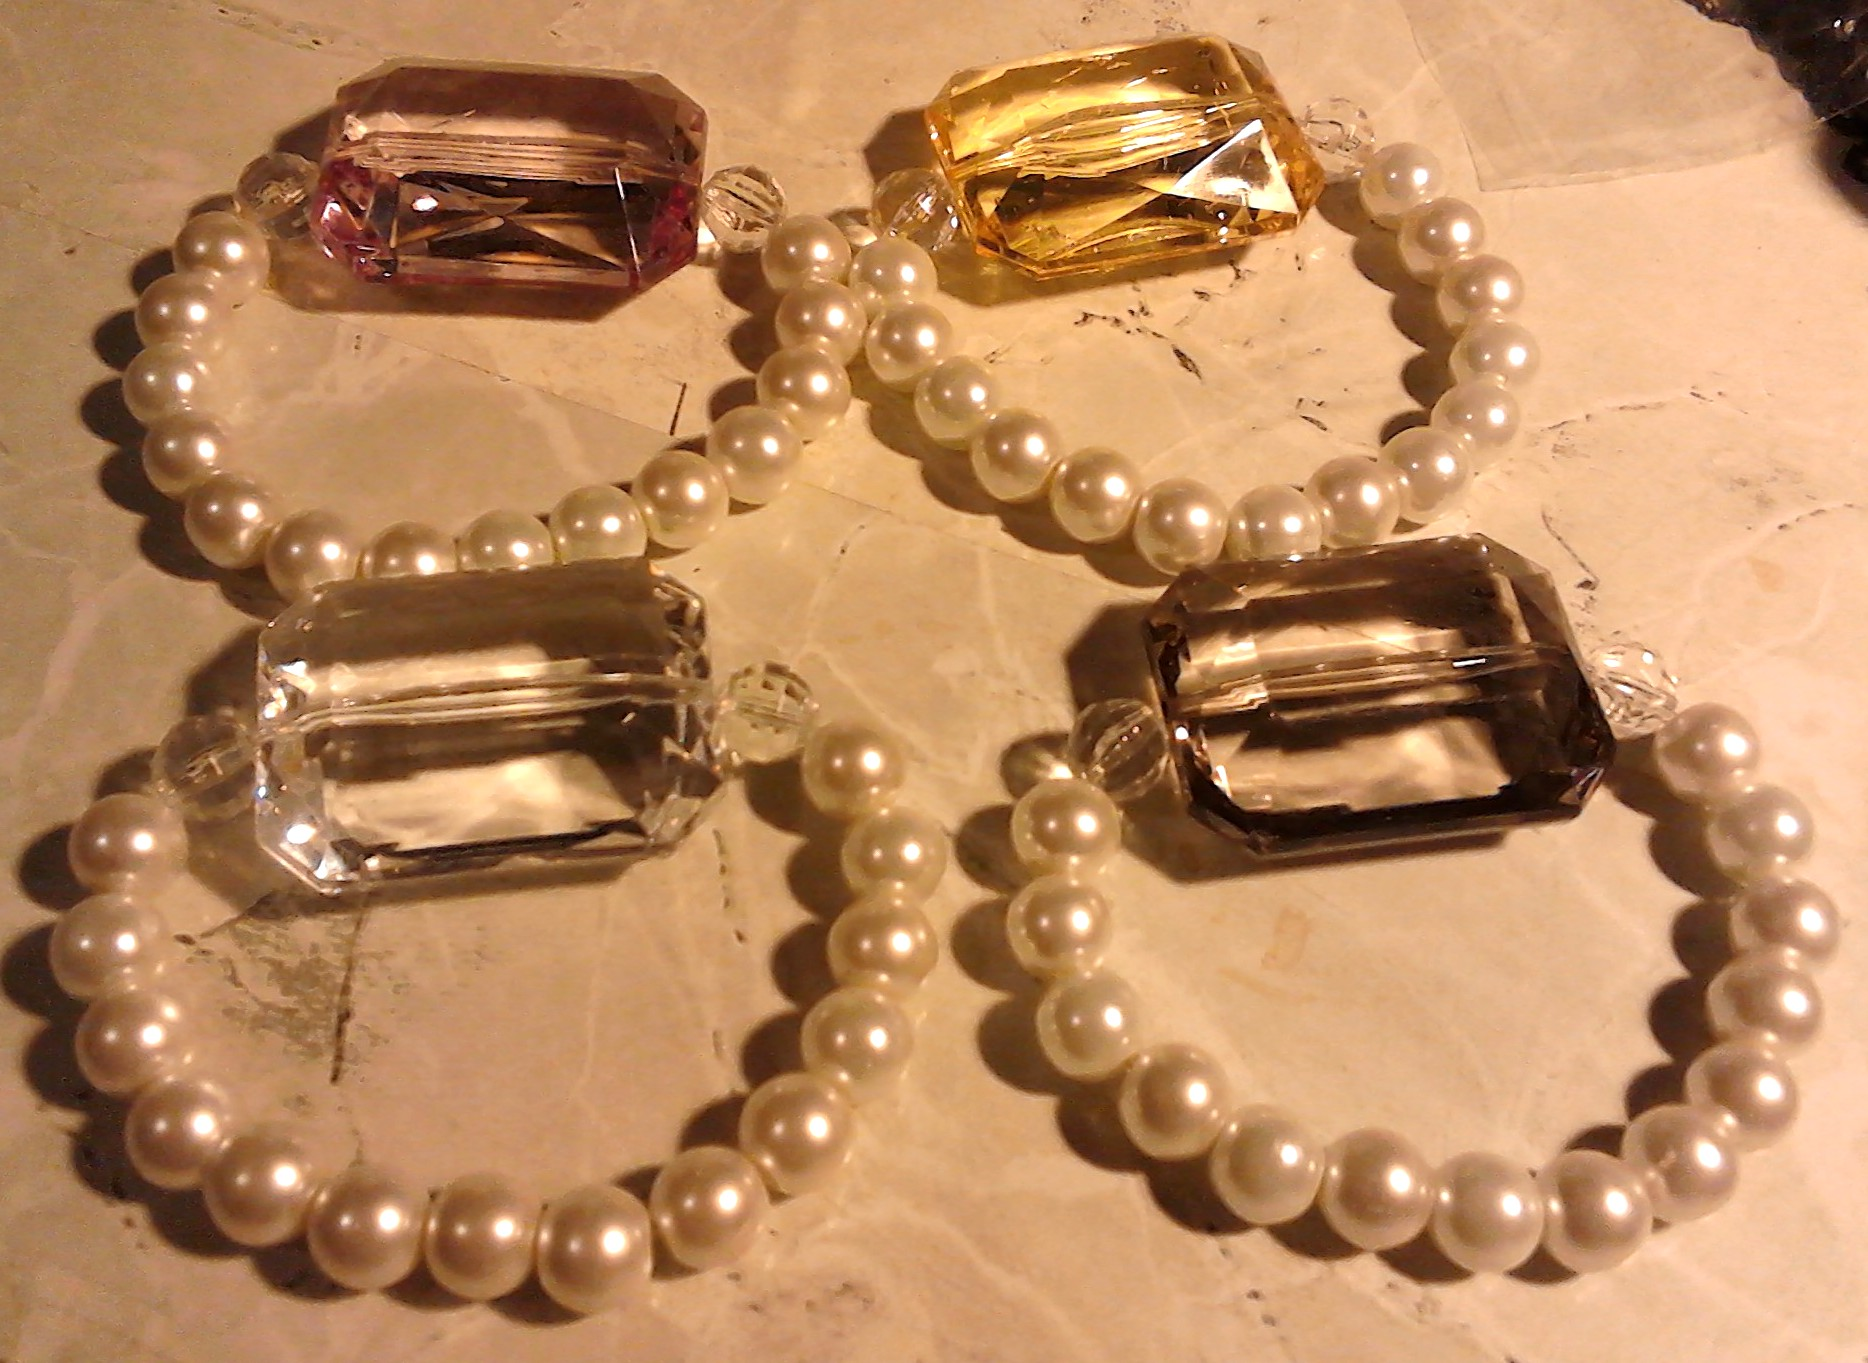 Jewelry Selling Beginner: Looking for Booth Tips